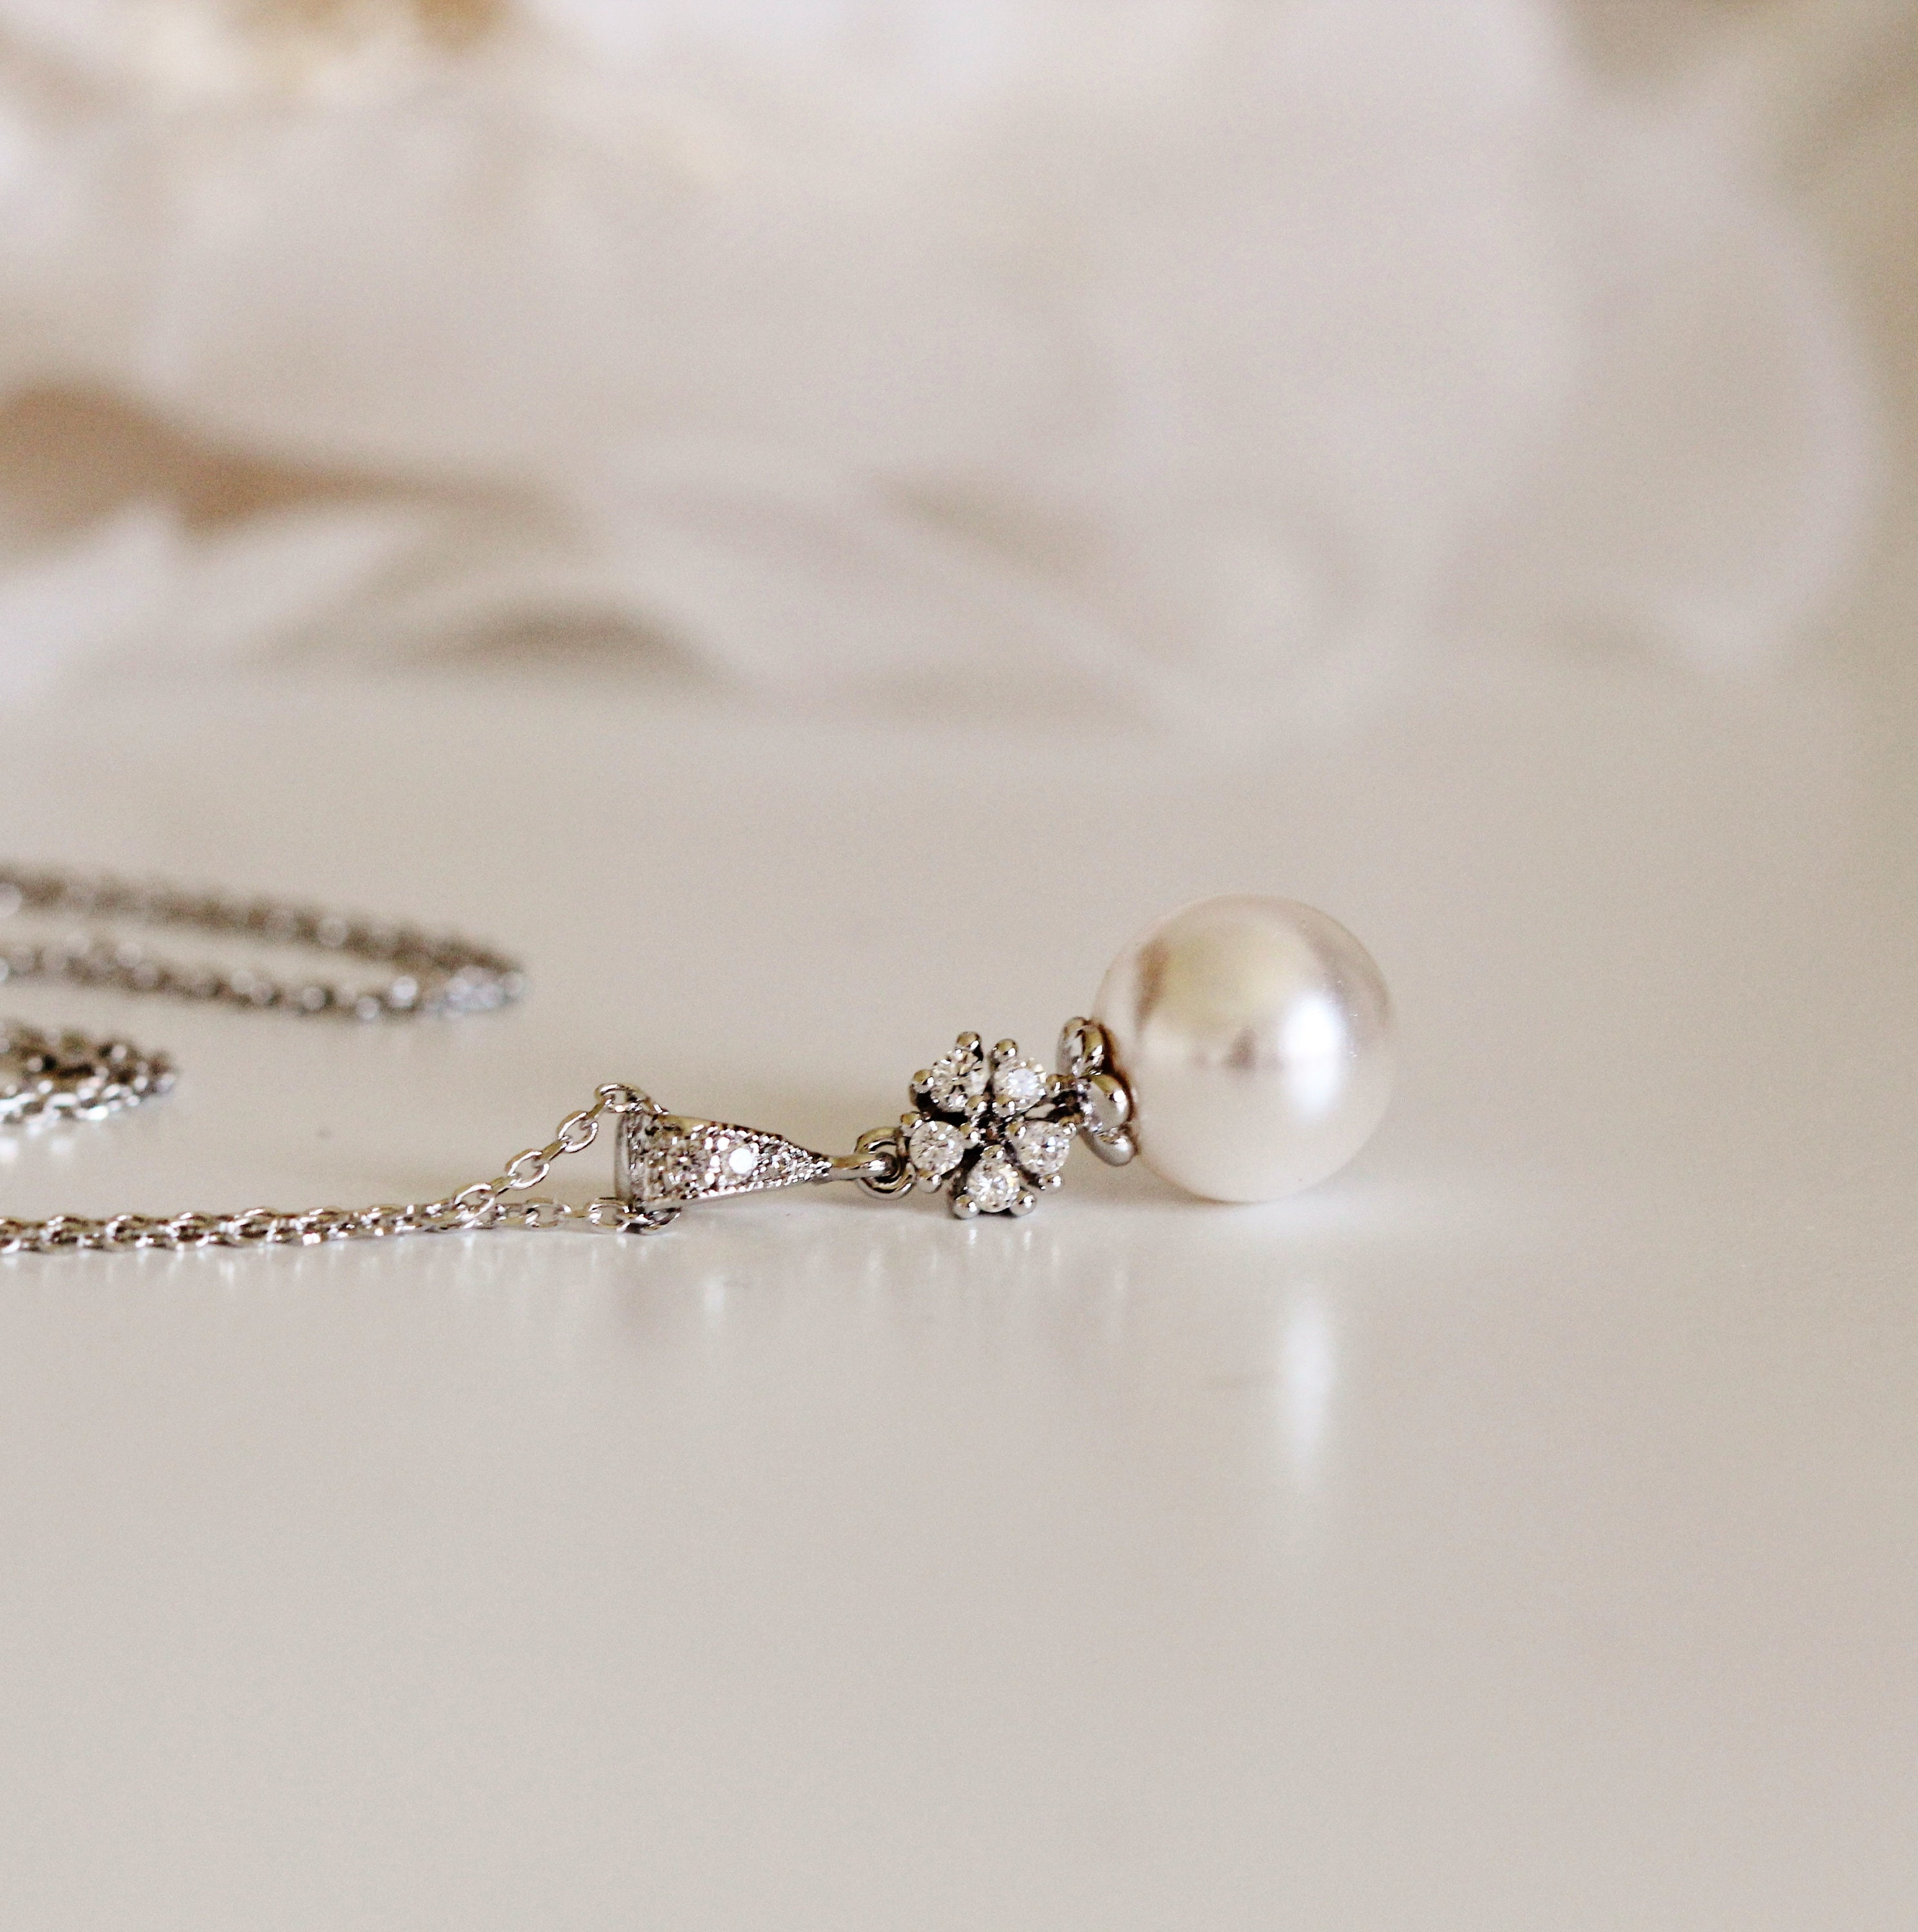 Pearl Bridal Necklace Pearl Wedding Necklace Swarovski Crystal